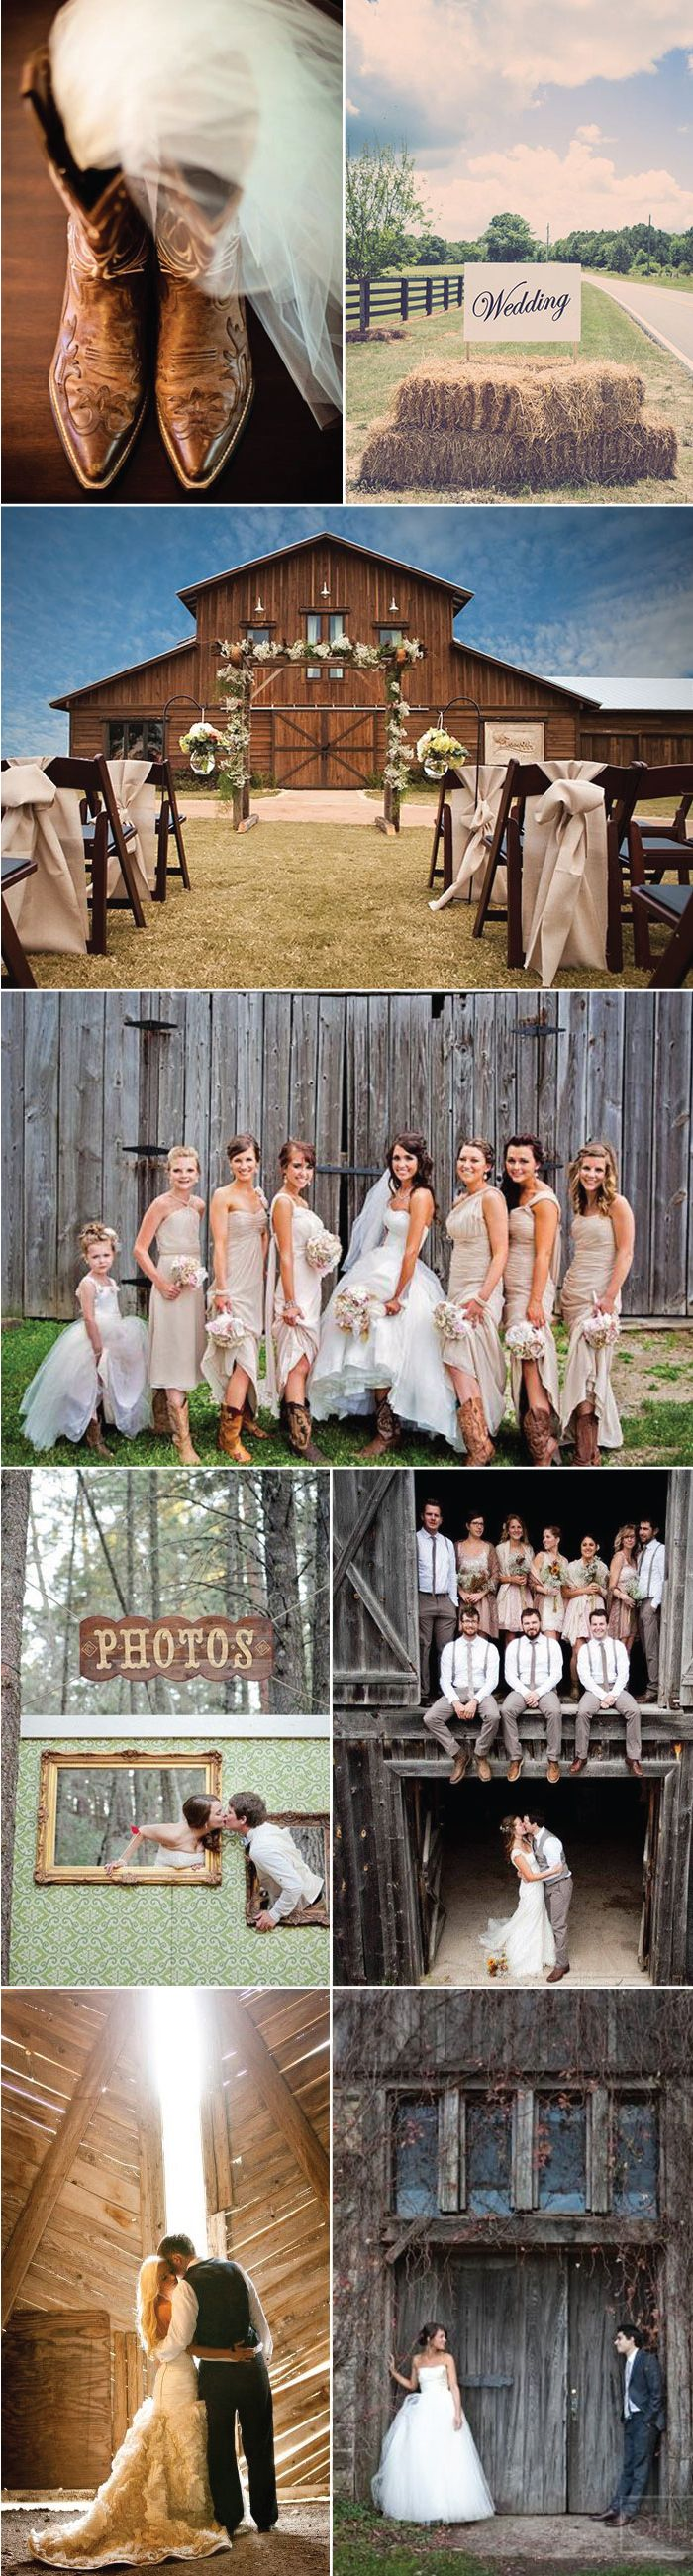 Love all these barn wedding ideas! Super cute. Not to mention the groom and his groomsmen's fashion ar